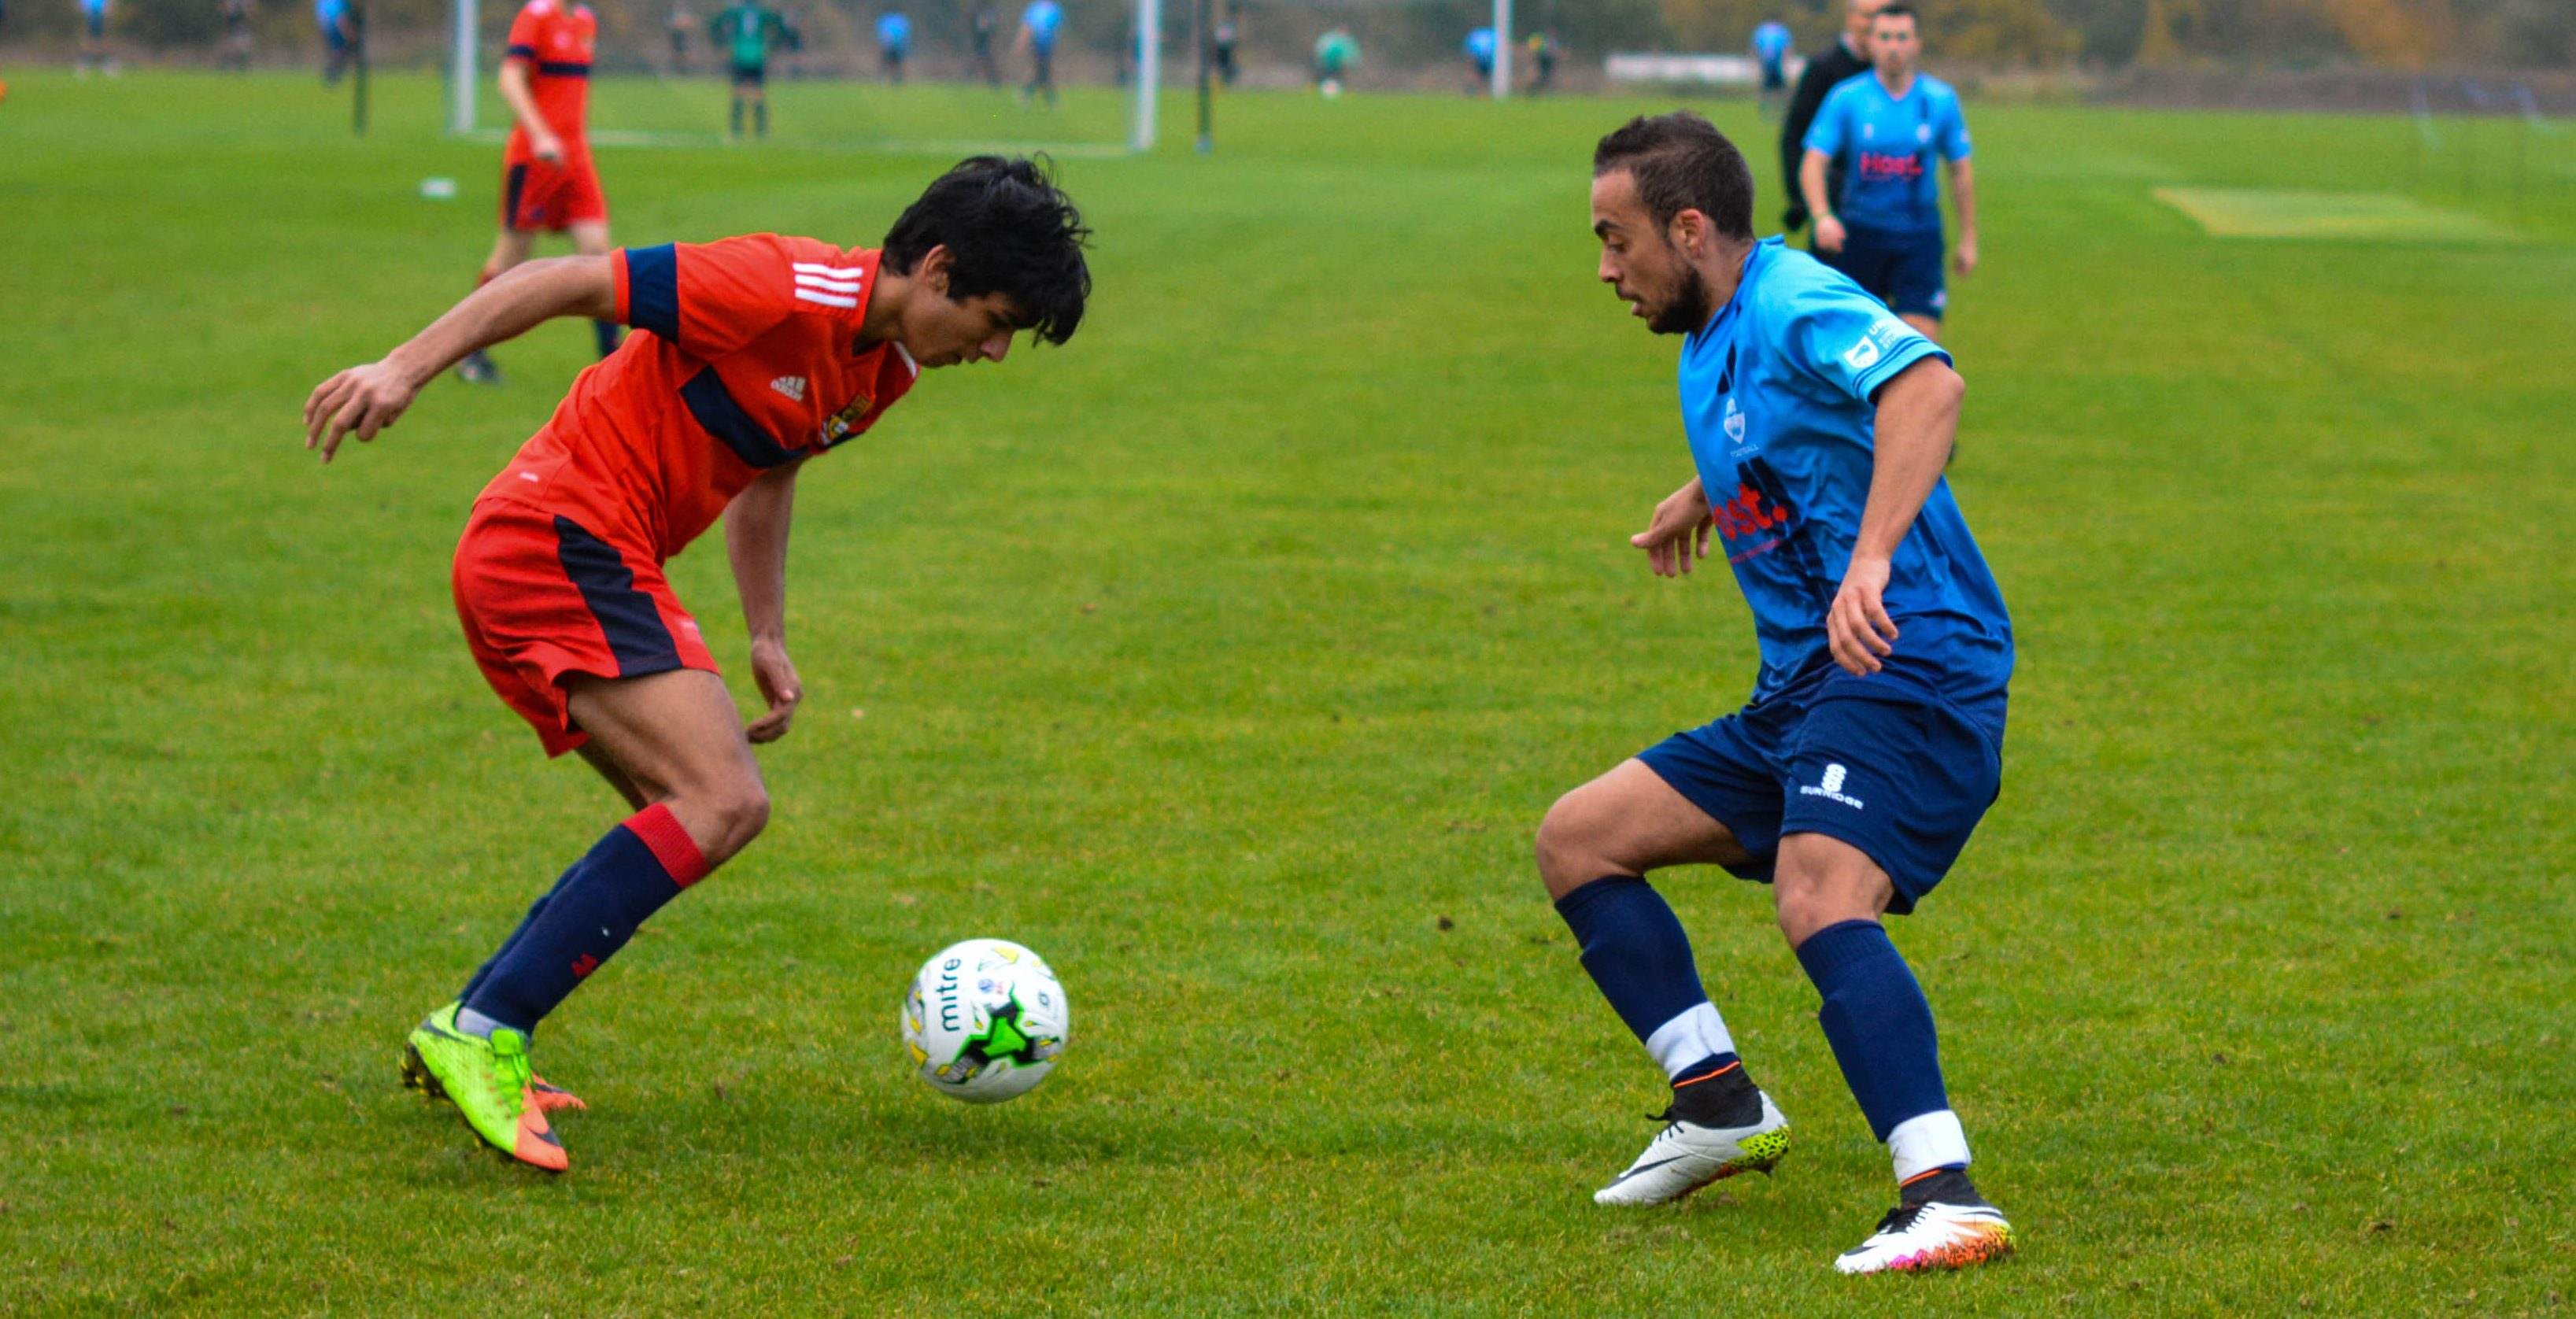 KU men's football record first win of the season as they put four past Imperial College London